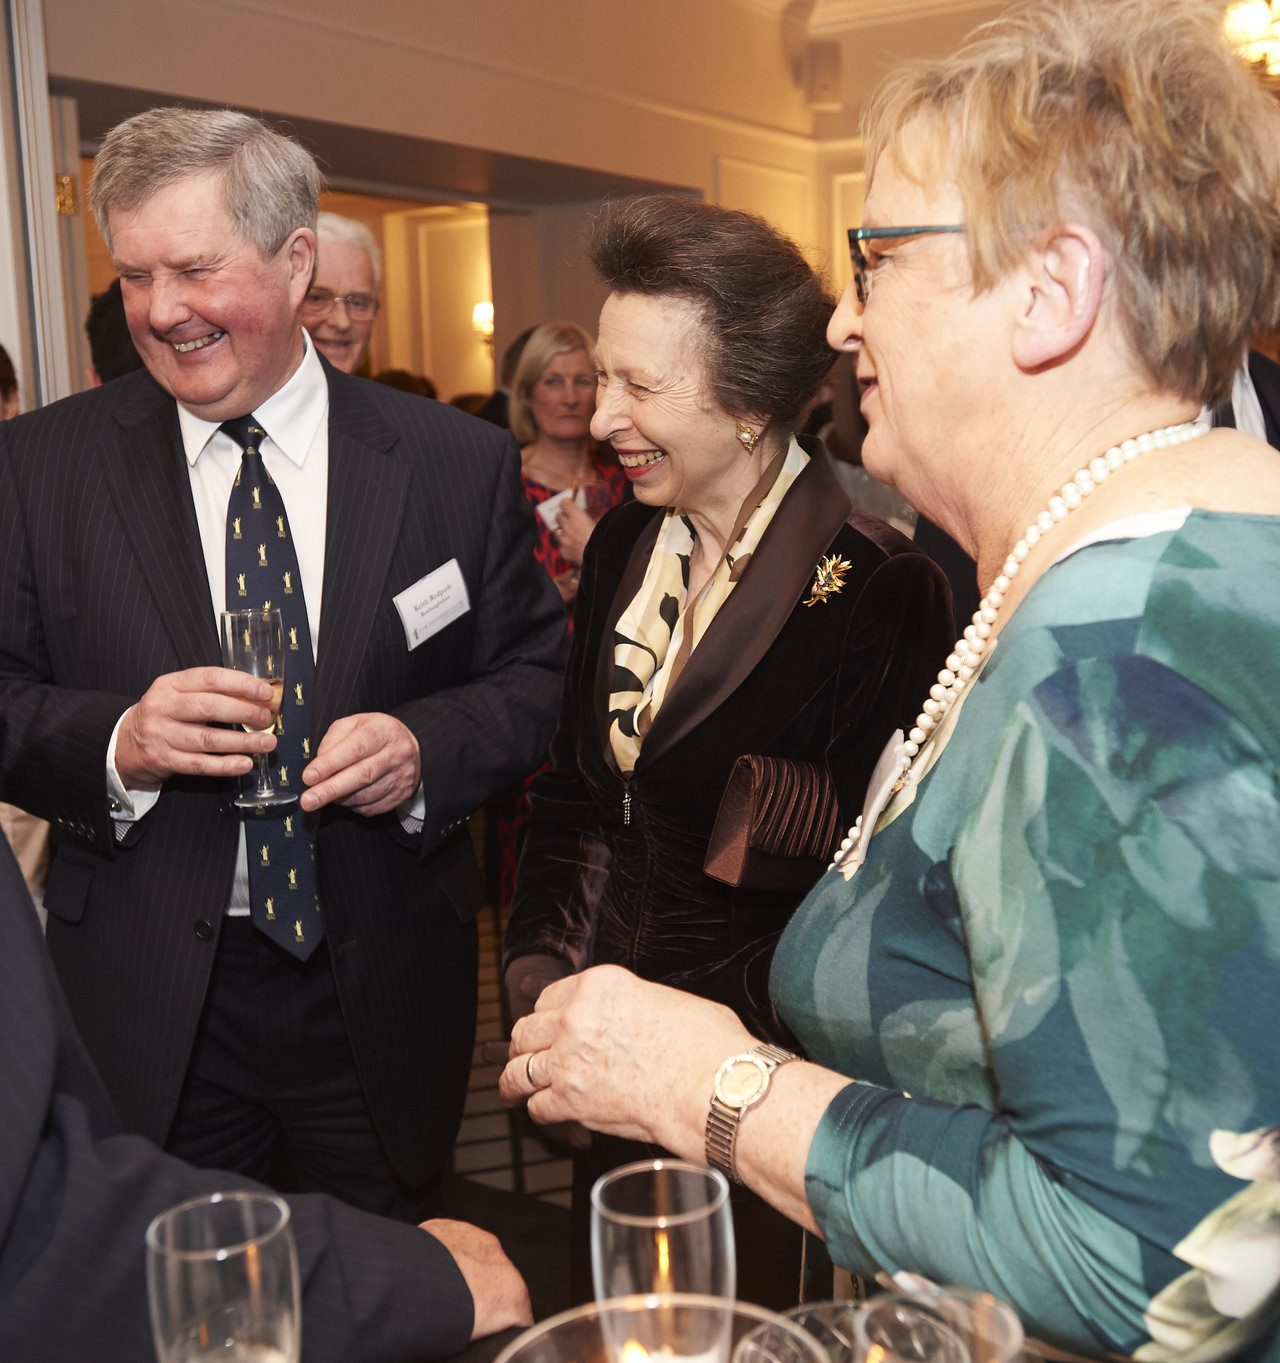 The Princess Royal, this evening opened the renovated Farmers Club premises at 3 Whitehall Court